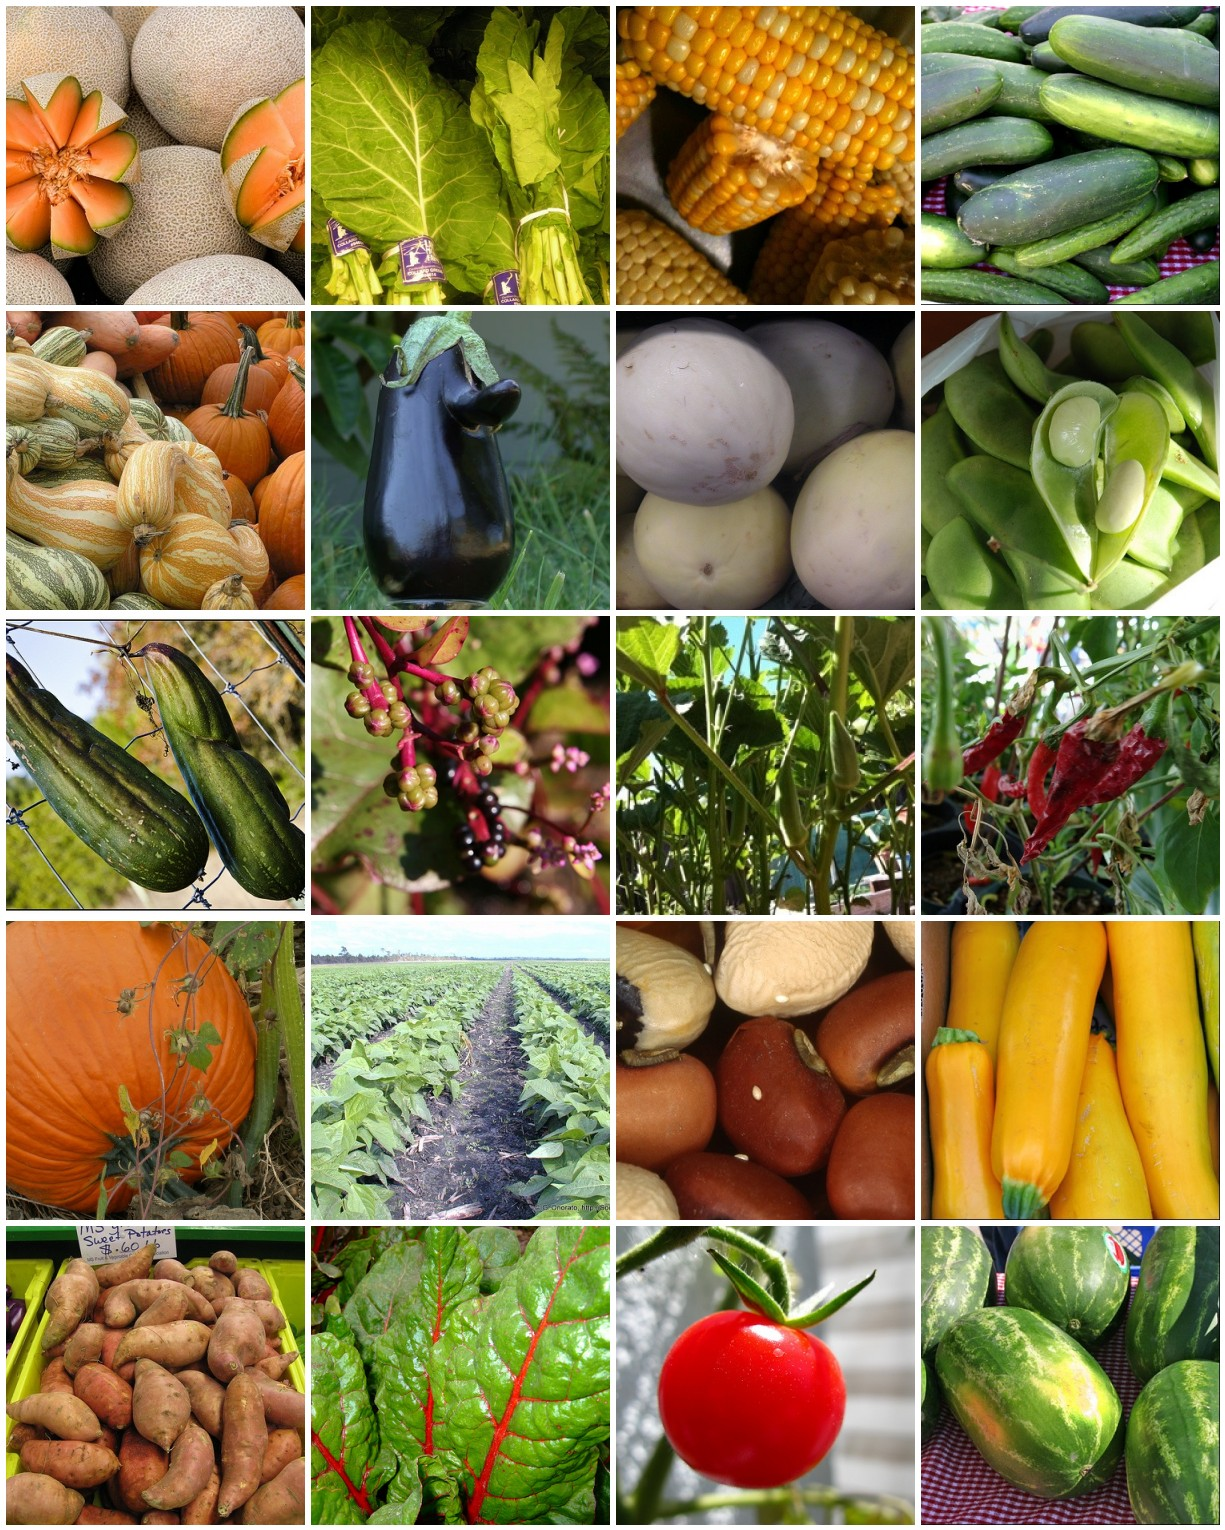 Texifornia veggies to plant in texas in april - Vegetable garden what to plant in april ...